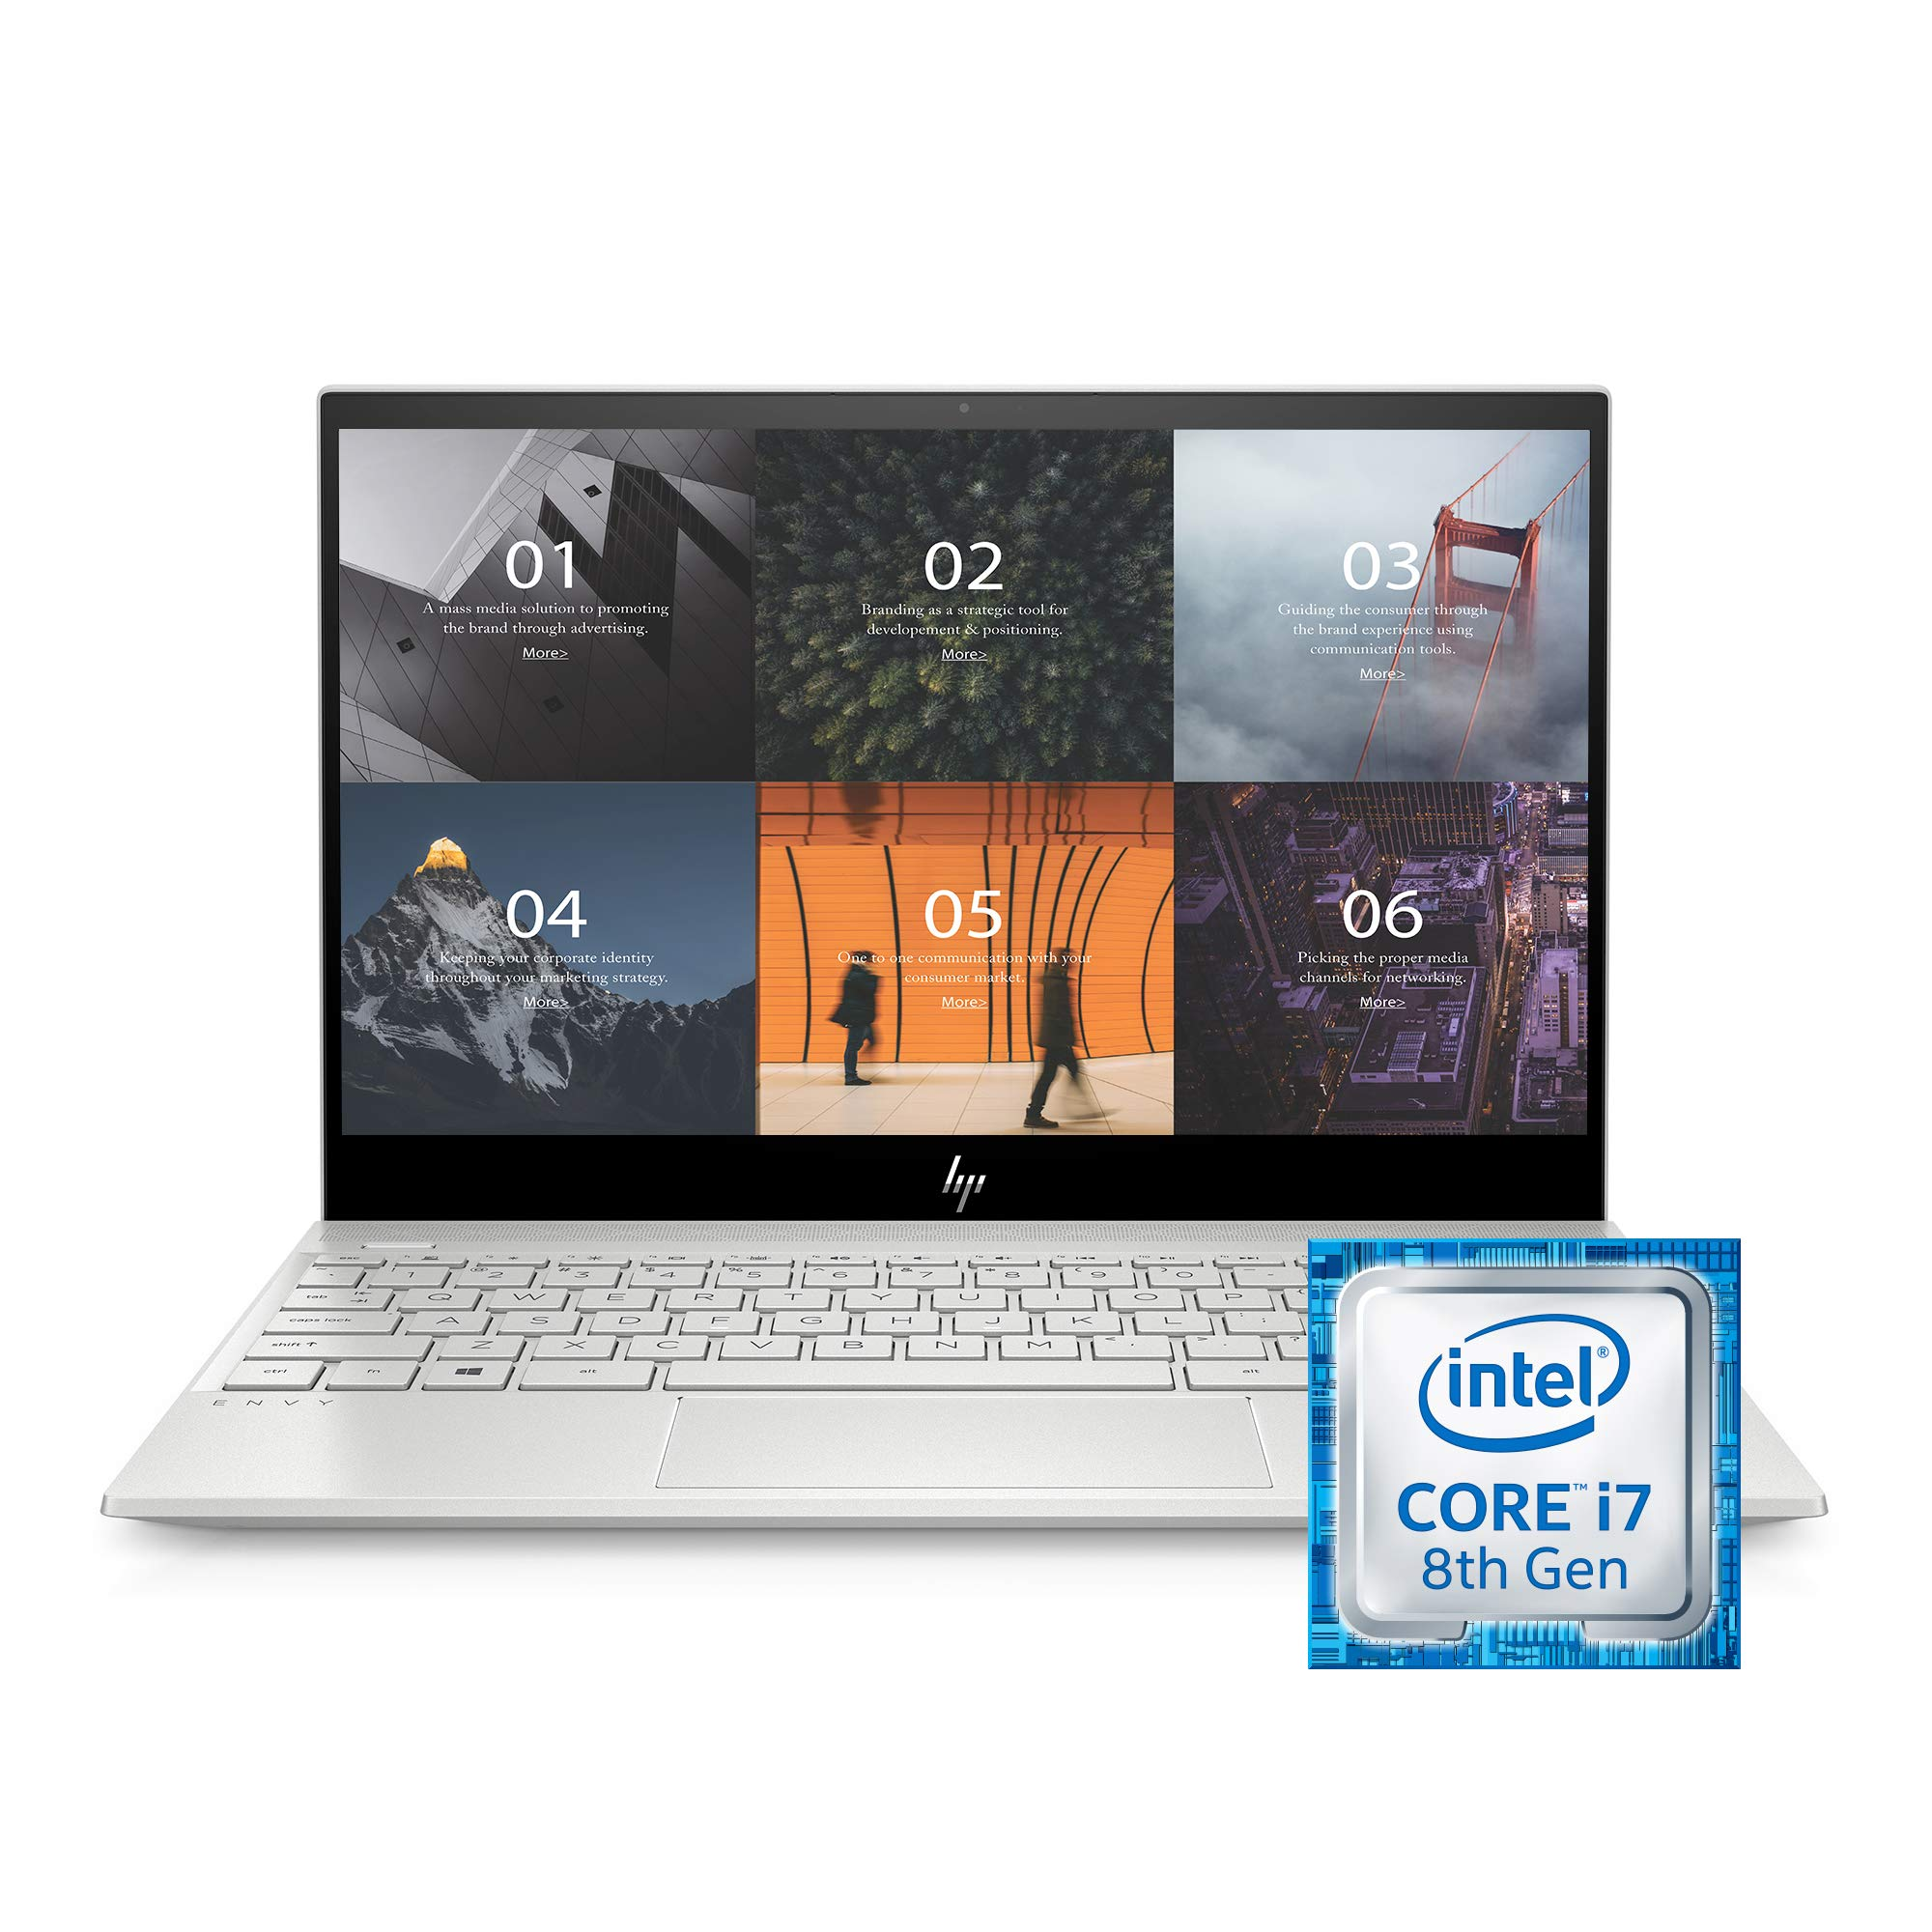 HP ENVY 13'' Thin Laptop w/ Fingerprint Reader, 4K Touchscreen, Intel Core i7-8565U, NVIDIA GeForce MX250 Graphics, 16GB SDRAM, 512GB SSD, Windows 10 Home (13-aq0044nr, Natural Silver)